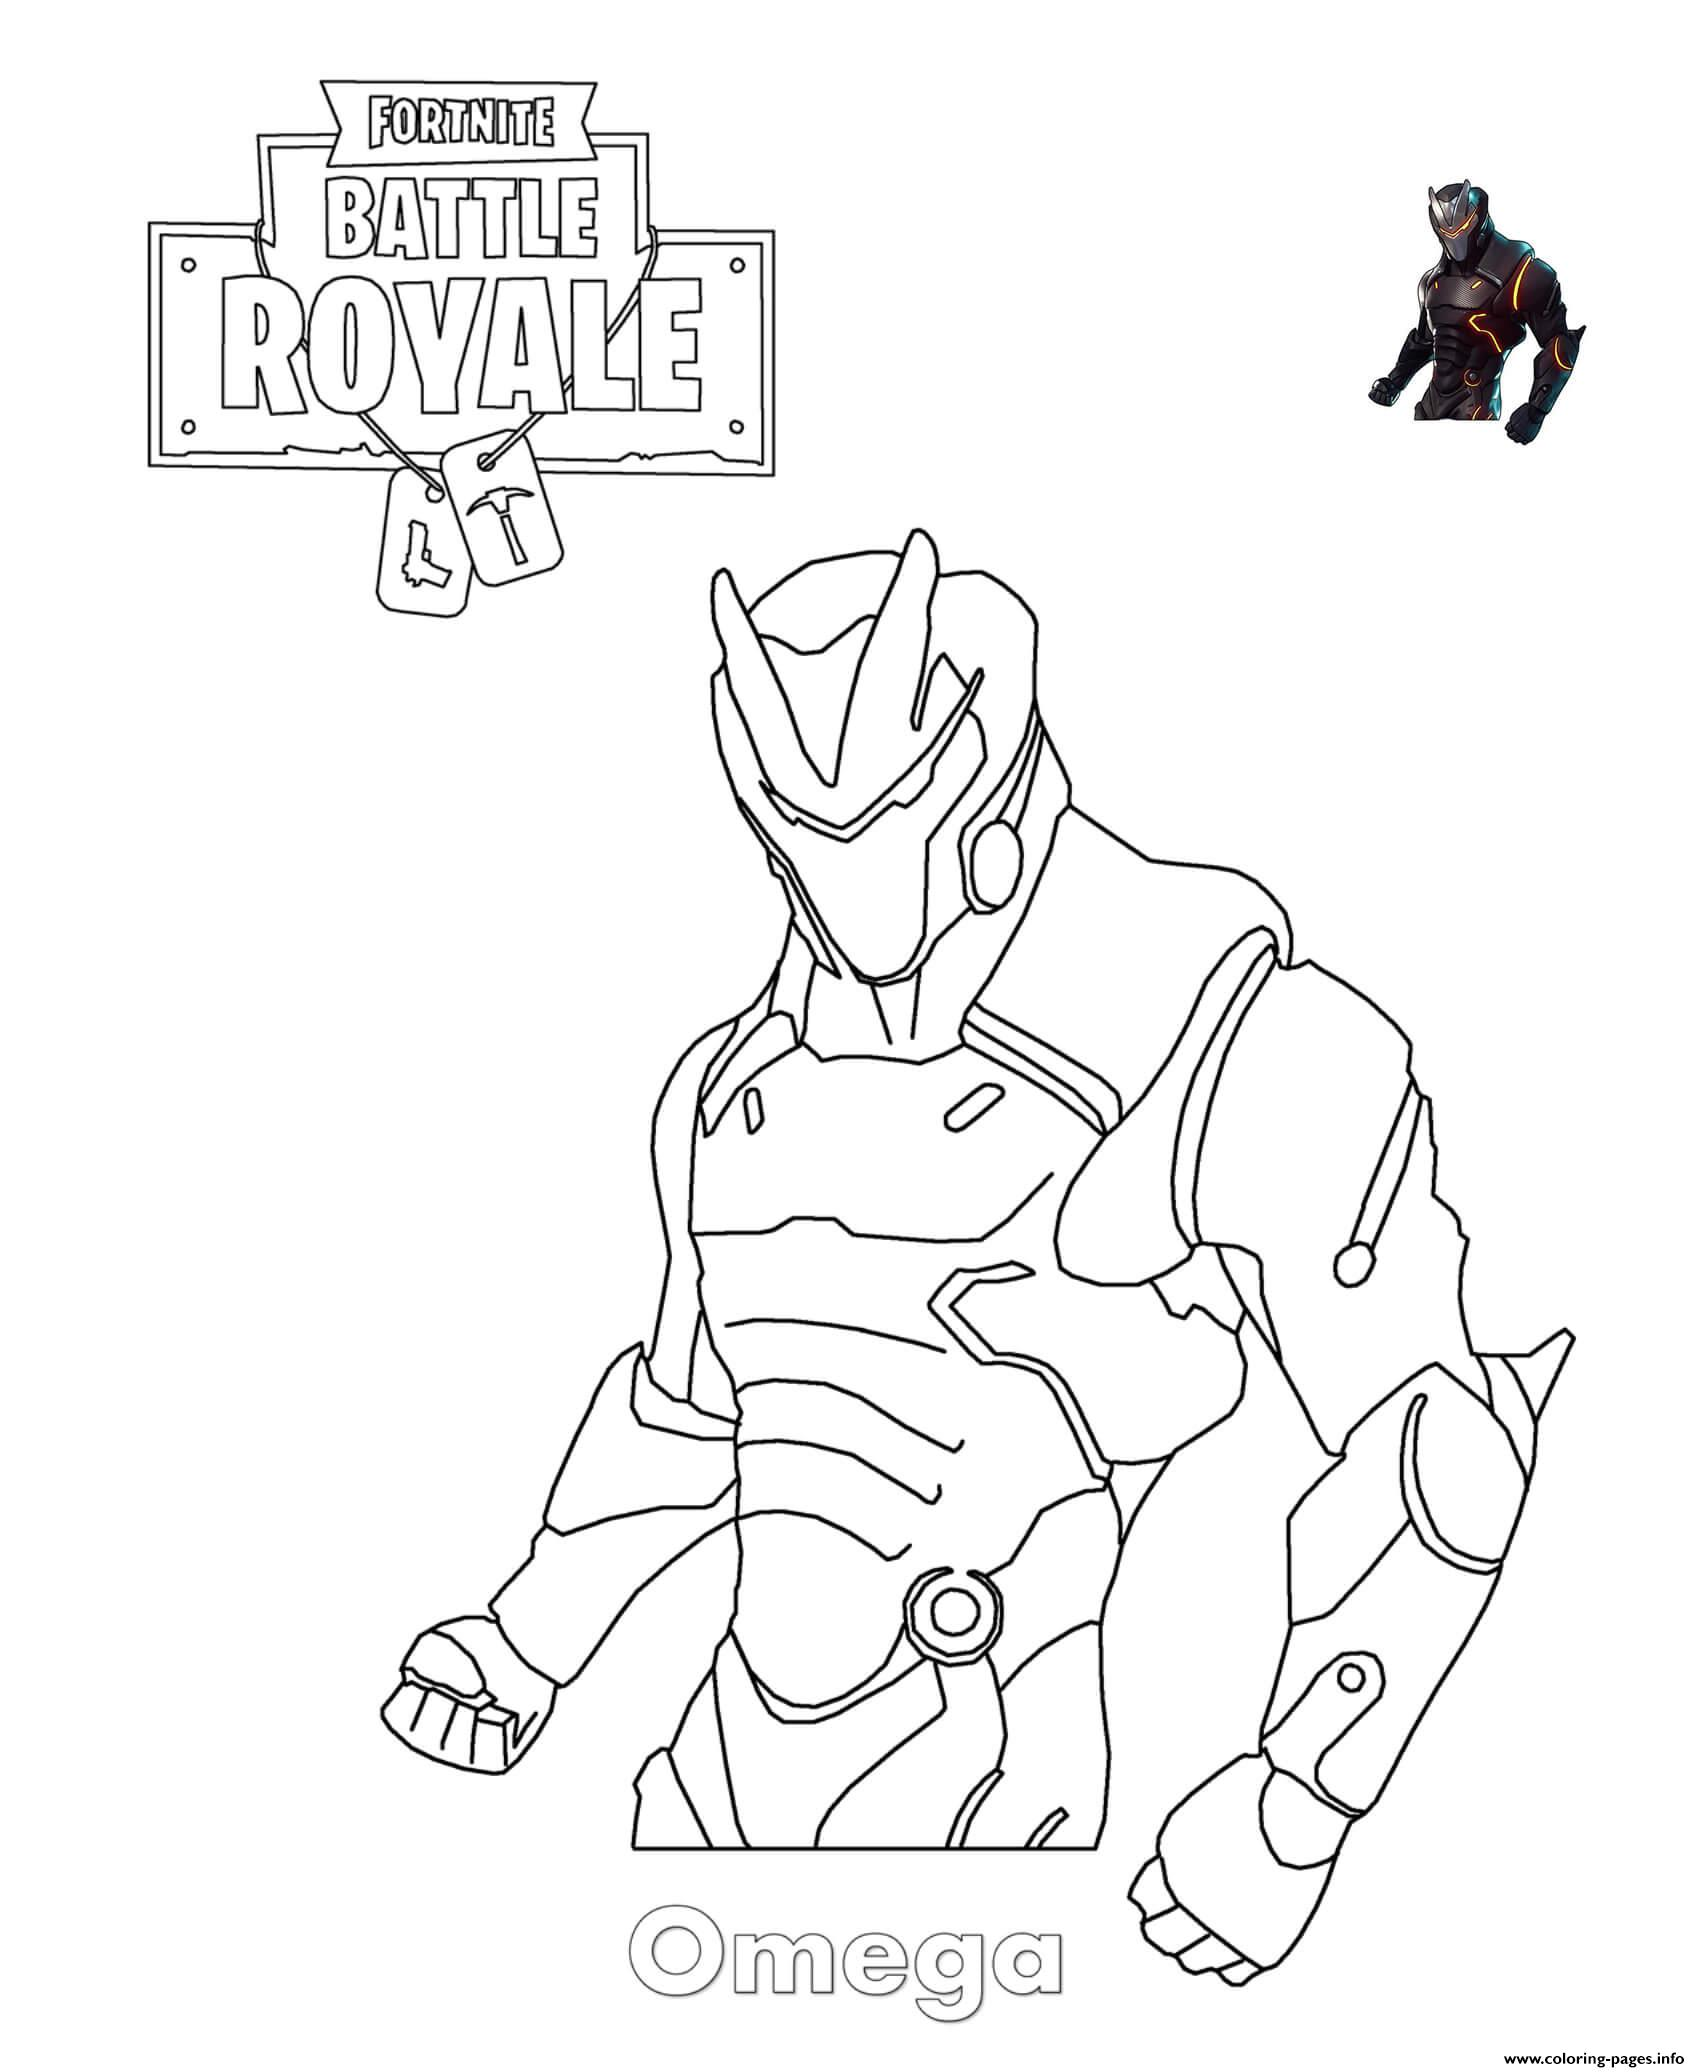 Omega Fortnite Coloring Pages Printable Coloring Home